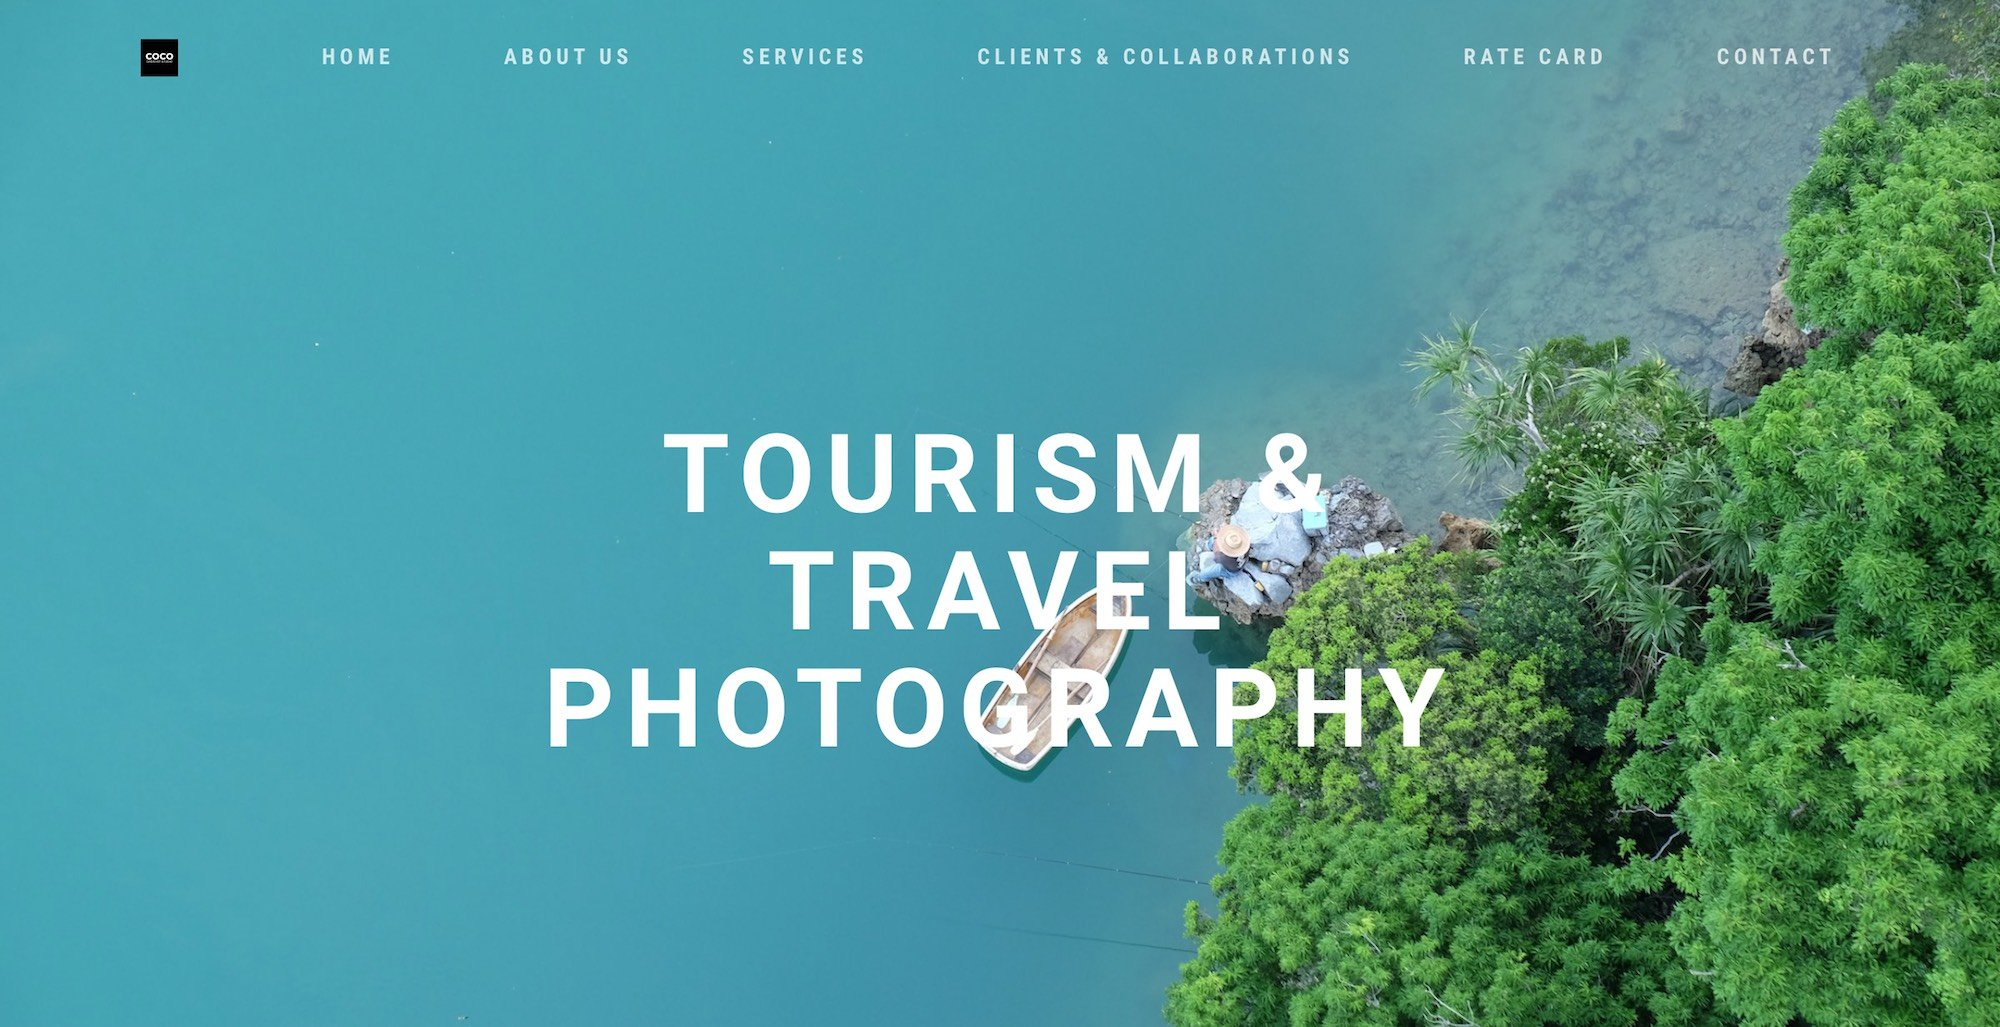 COCO Creative studio photography & videography Singapore - tourism travel